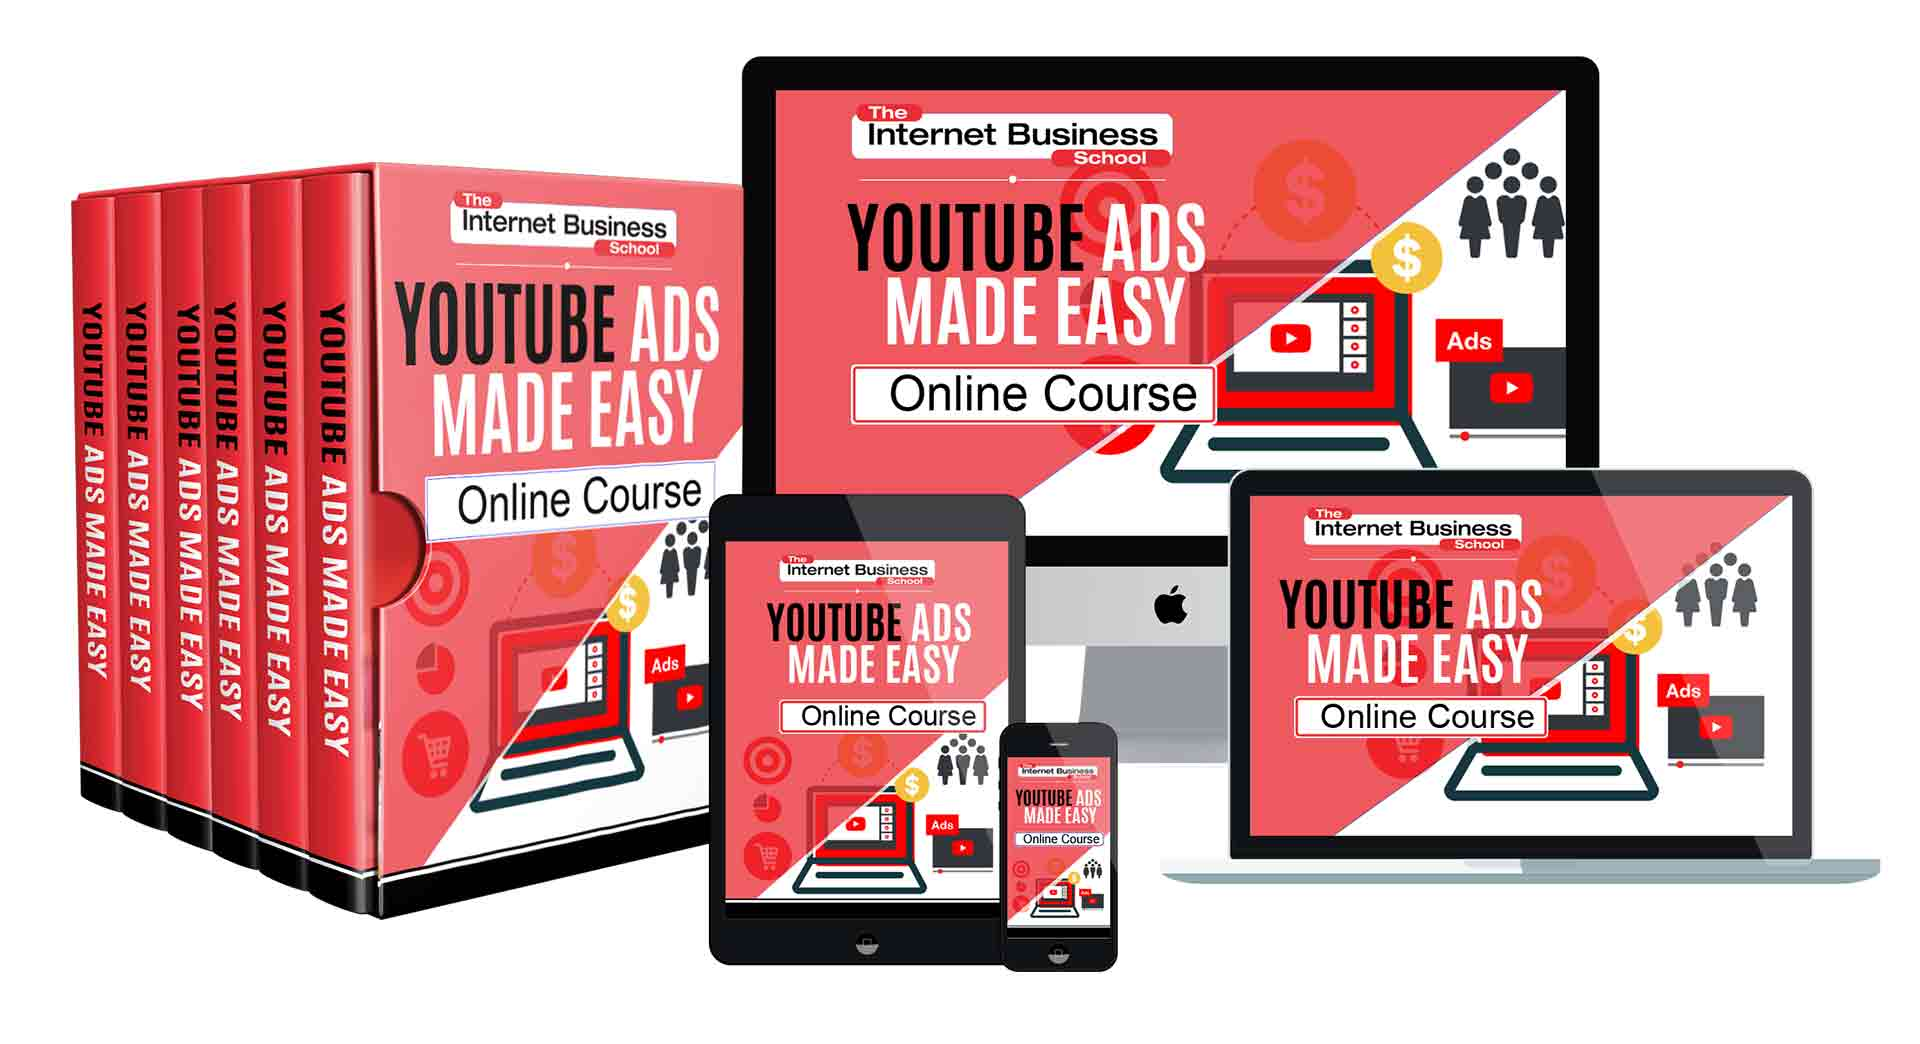 YouTube Ads Made Easy Course